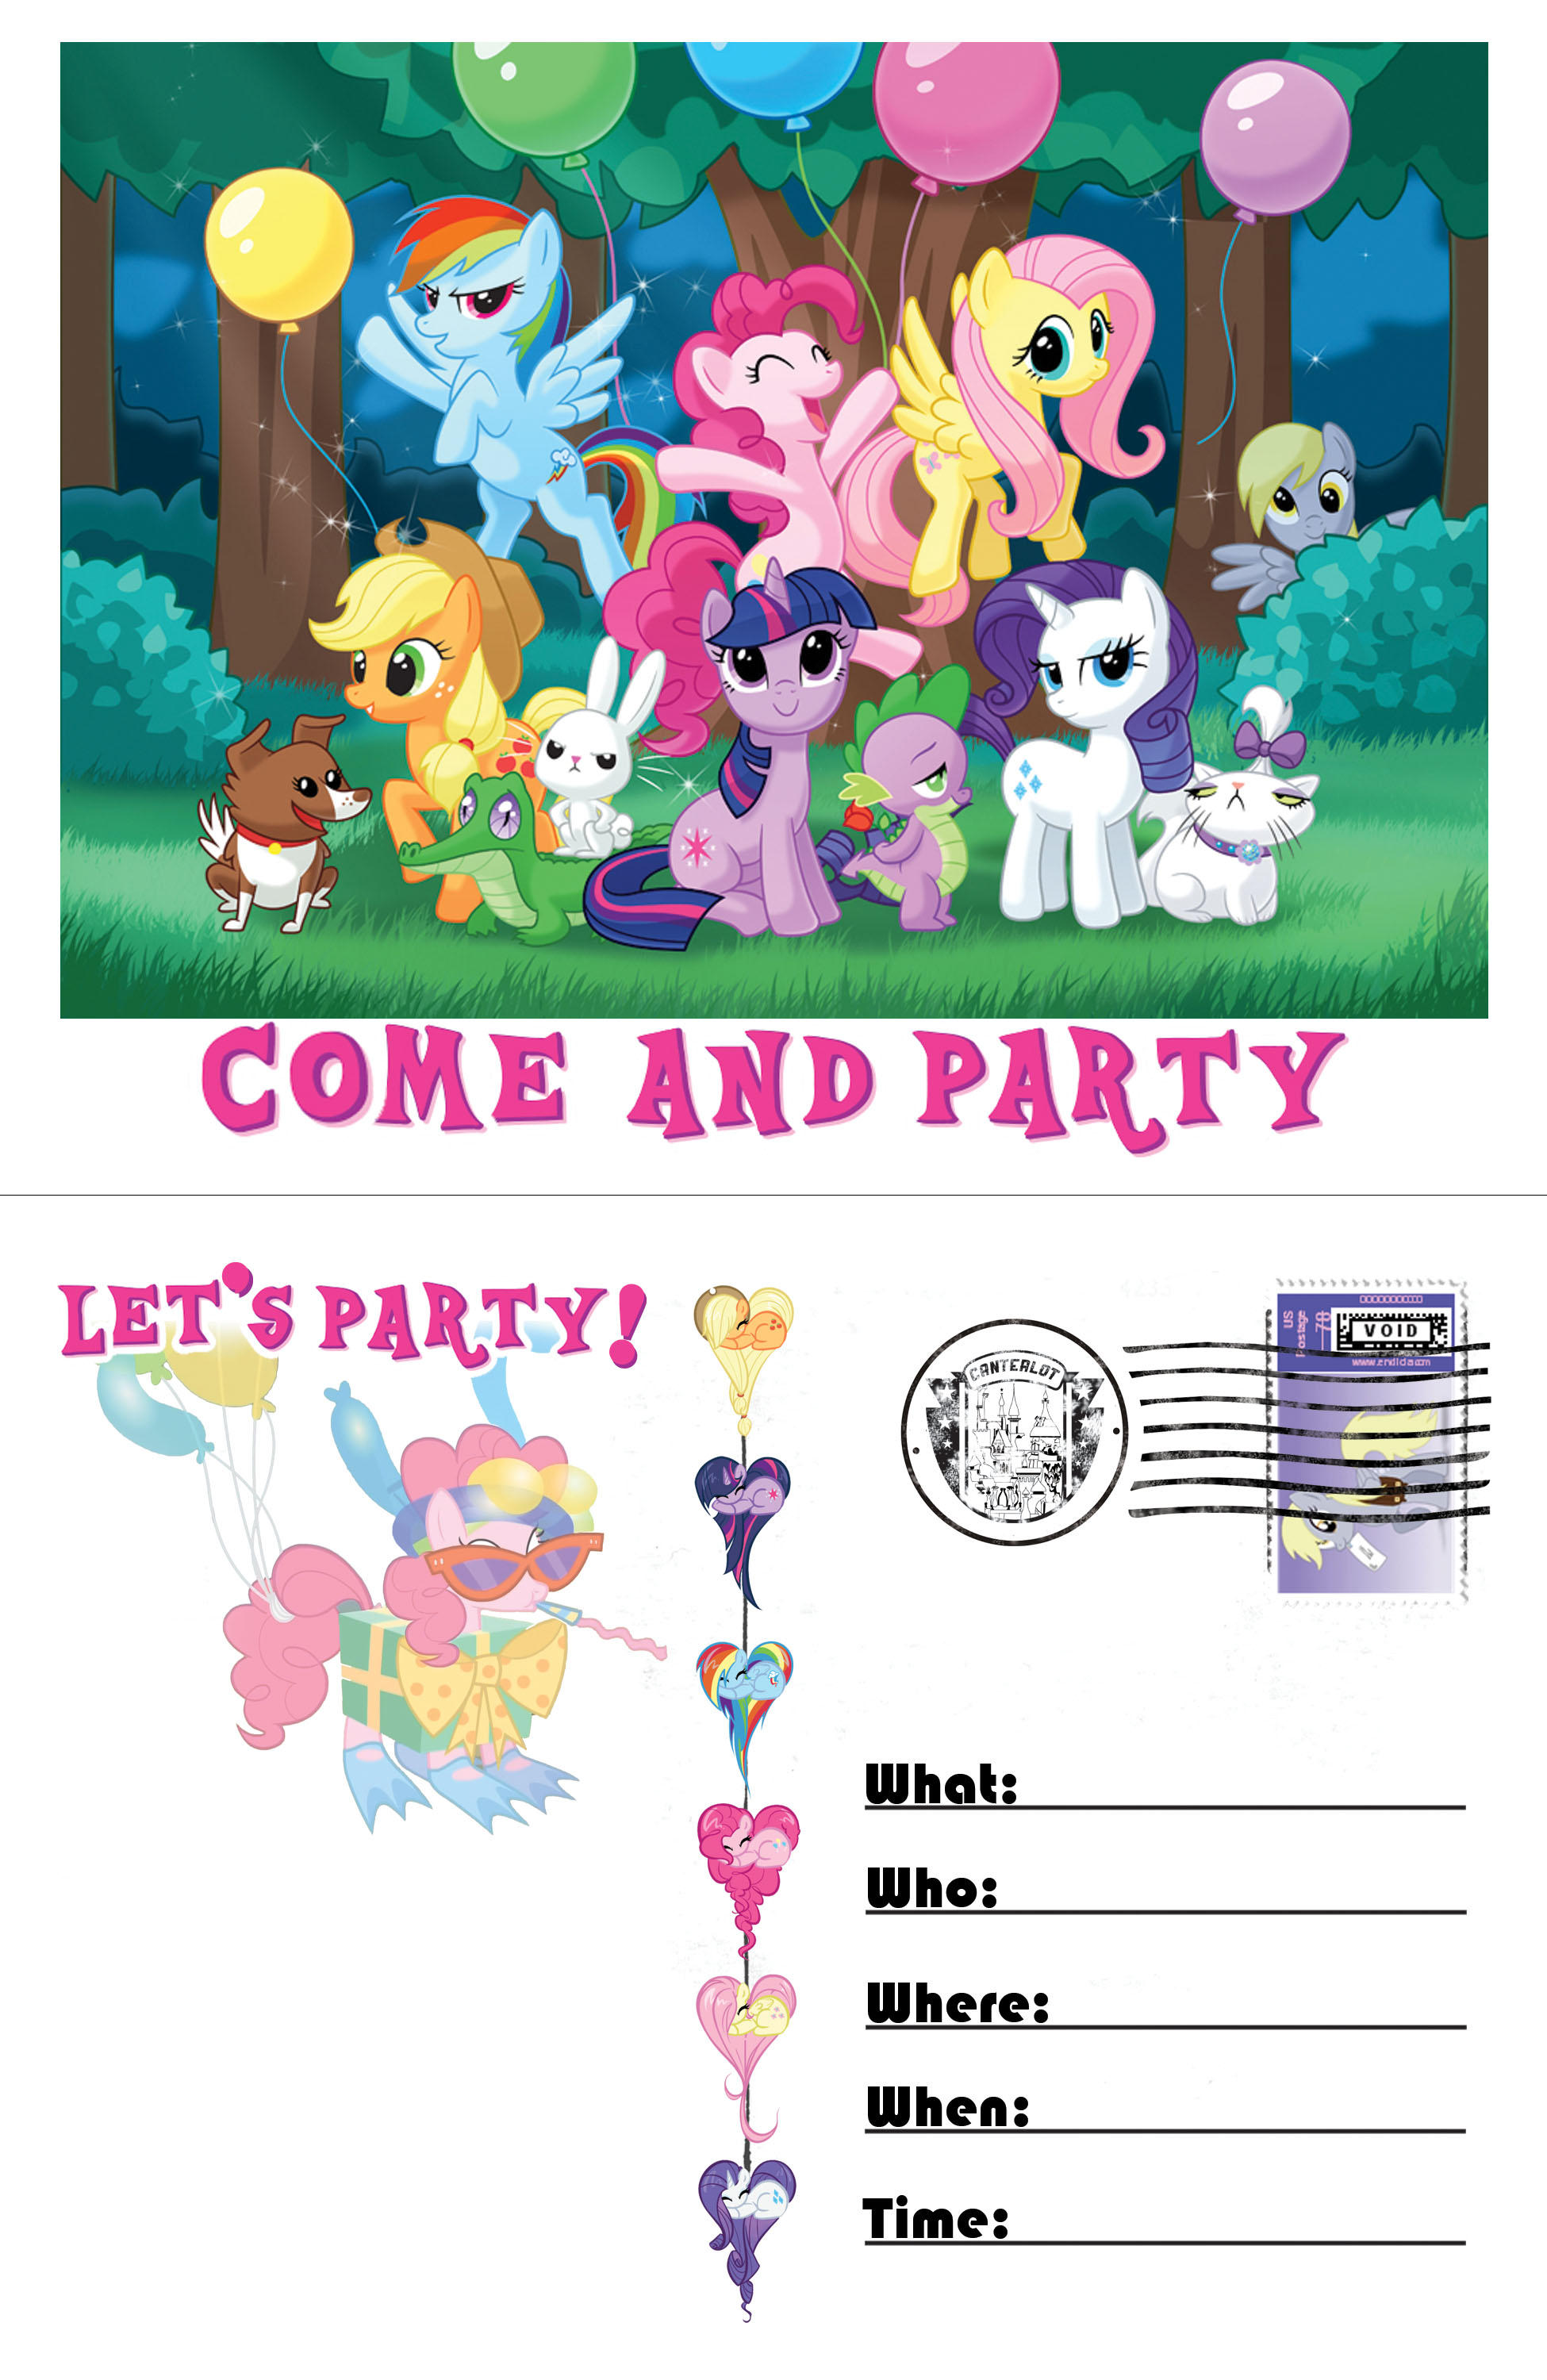 Pony invitation template by moviefreaq on deviantart pony invitation template by moviefreaq pony invitation template by moviefreaq filmwisefo